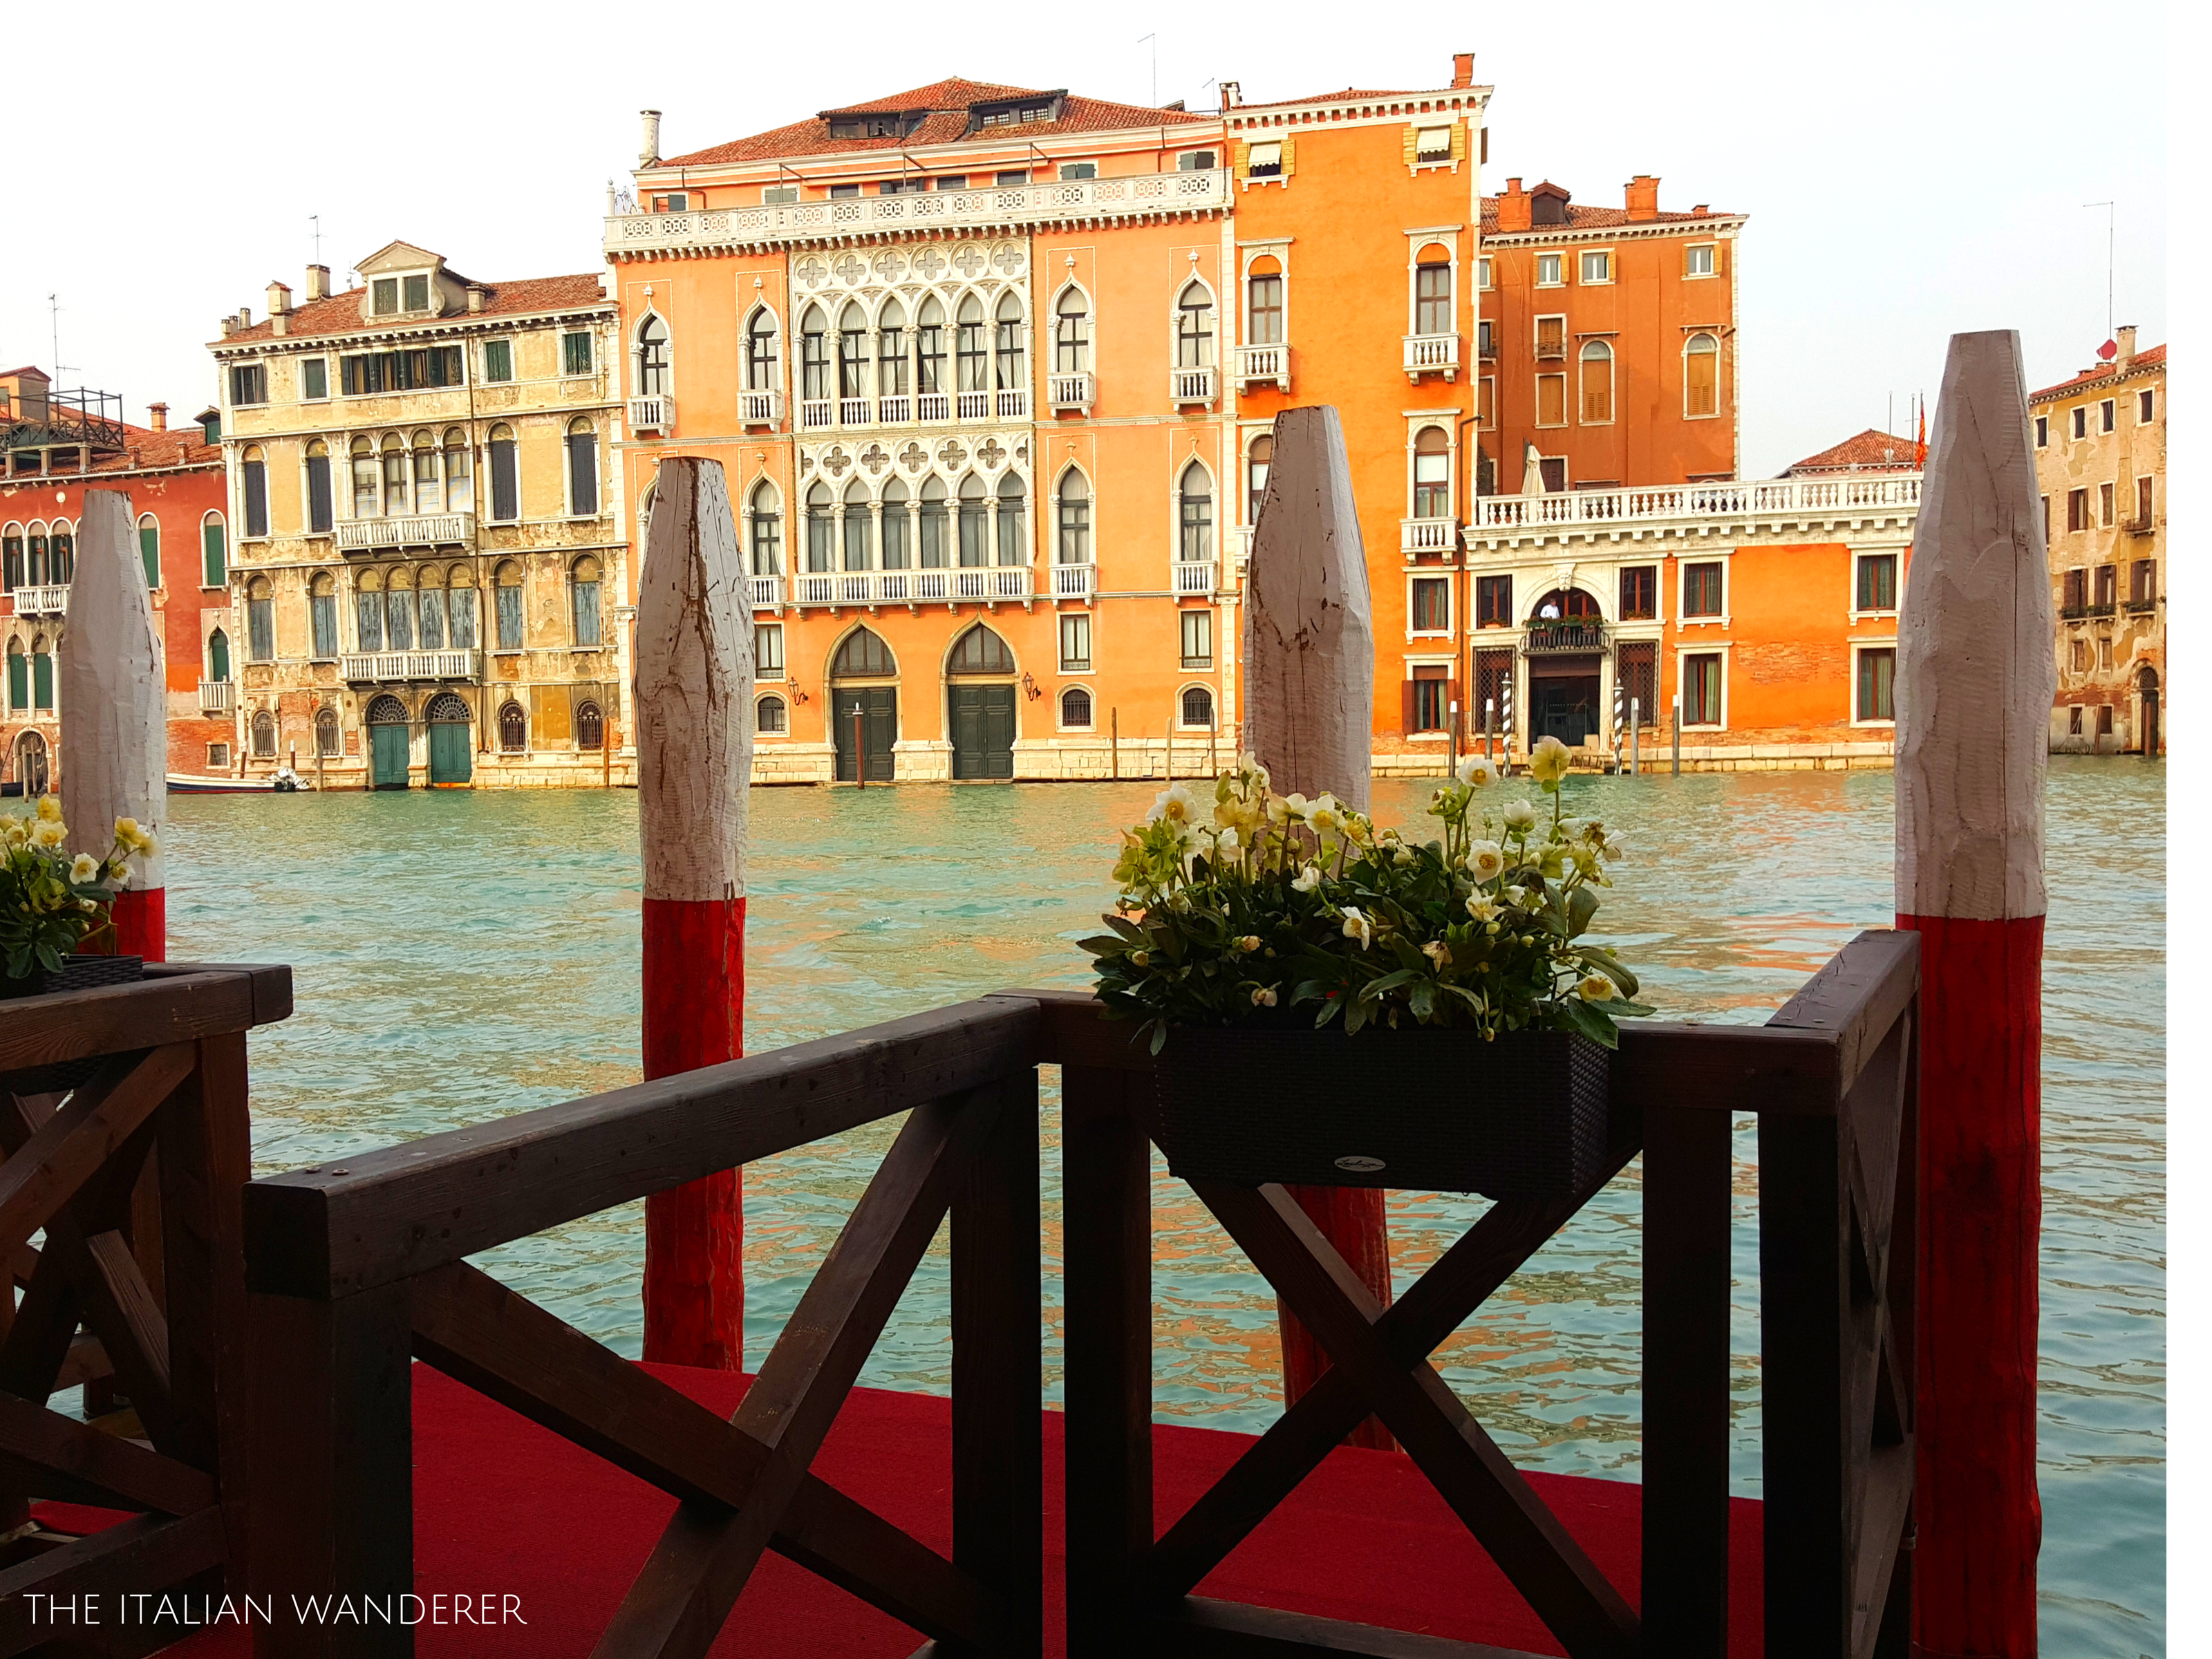 The view from the entrance at Palazzo Barocci, #Venice